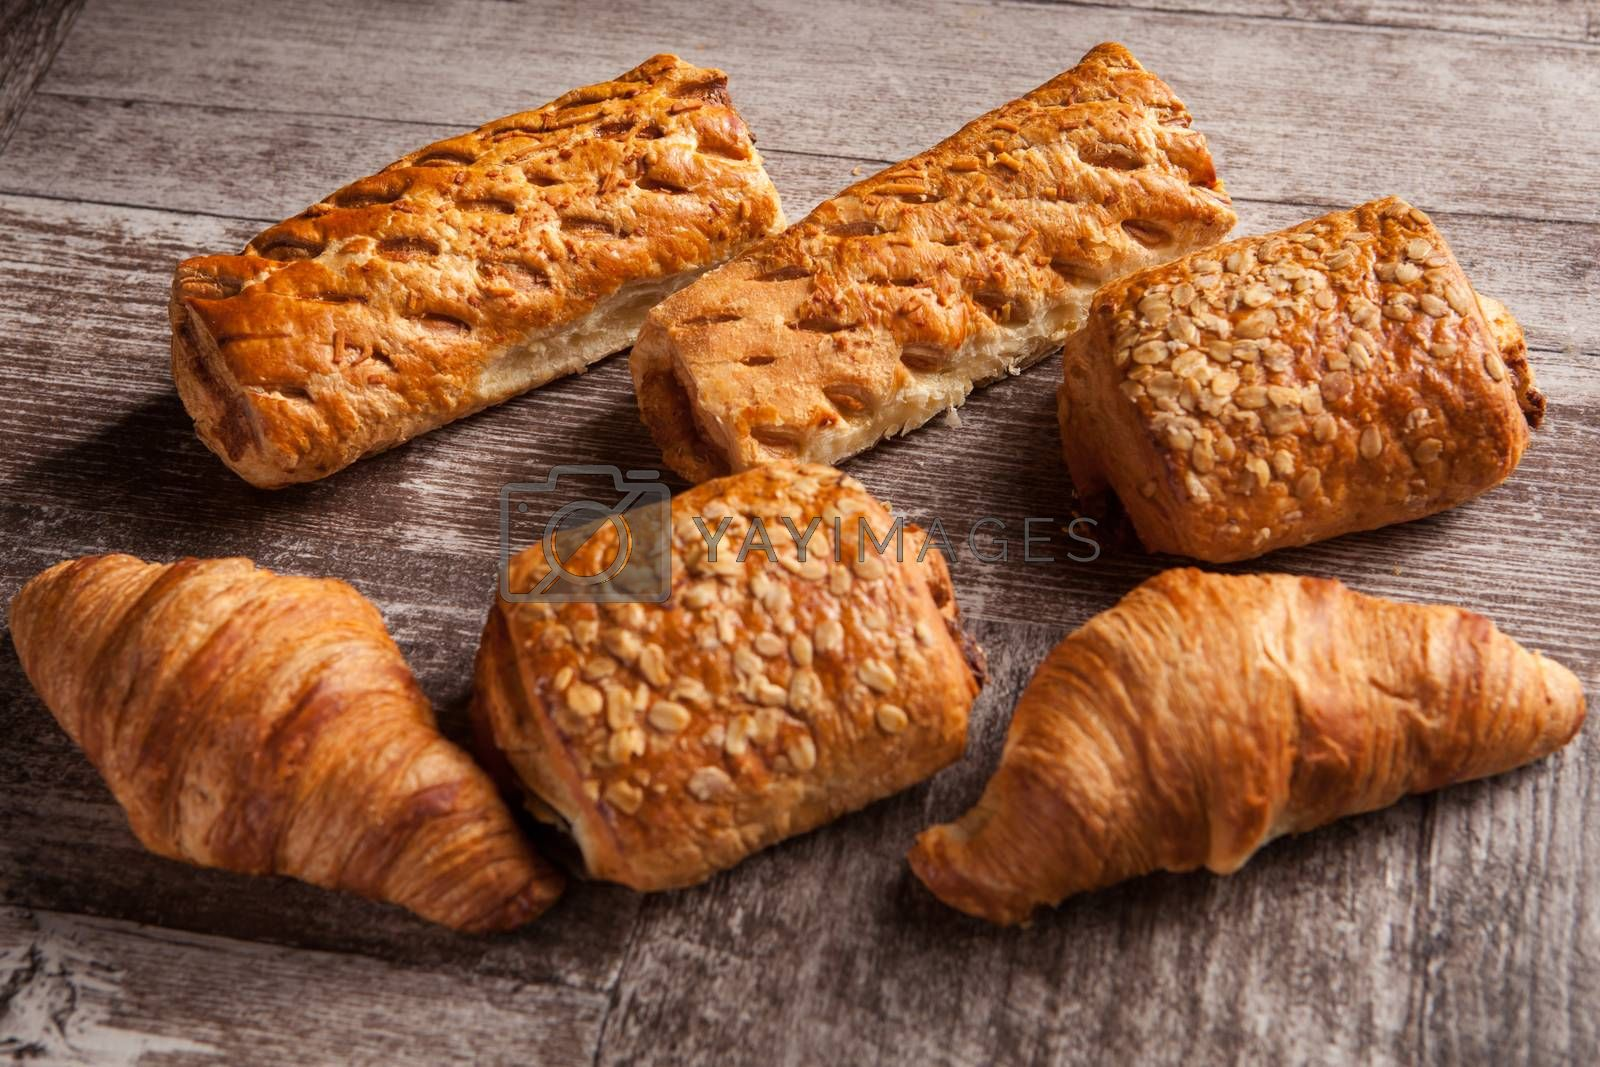 Assortment of pastries on rustic wooden table. Delicious brunch.